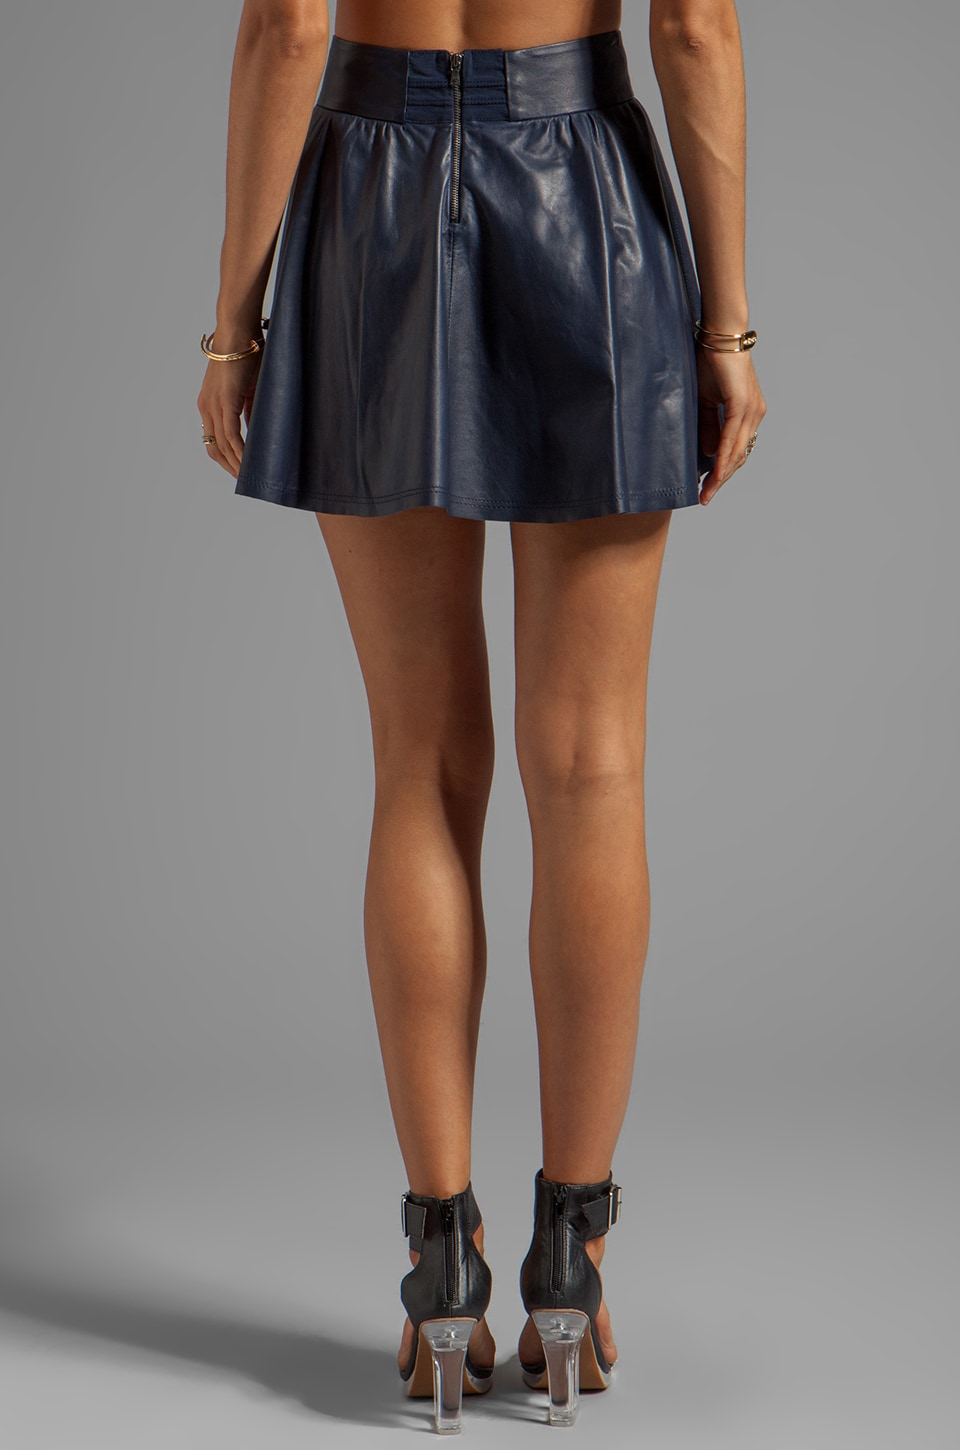 Alice + Olivia Luann Leather Flared Skirt in Navy